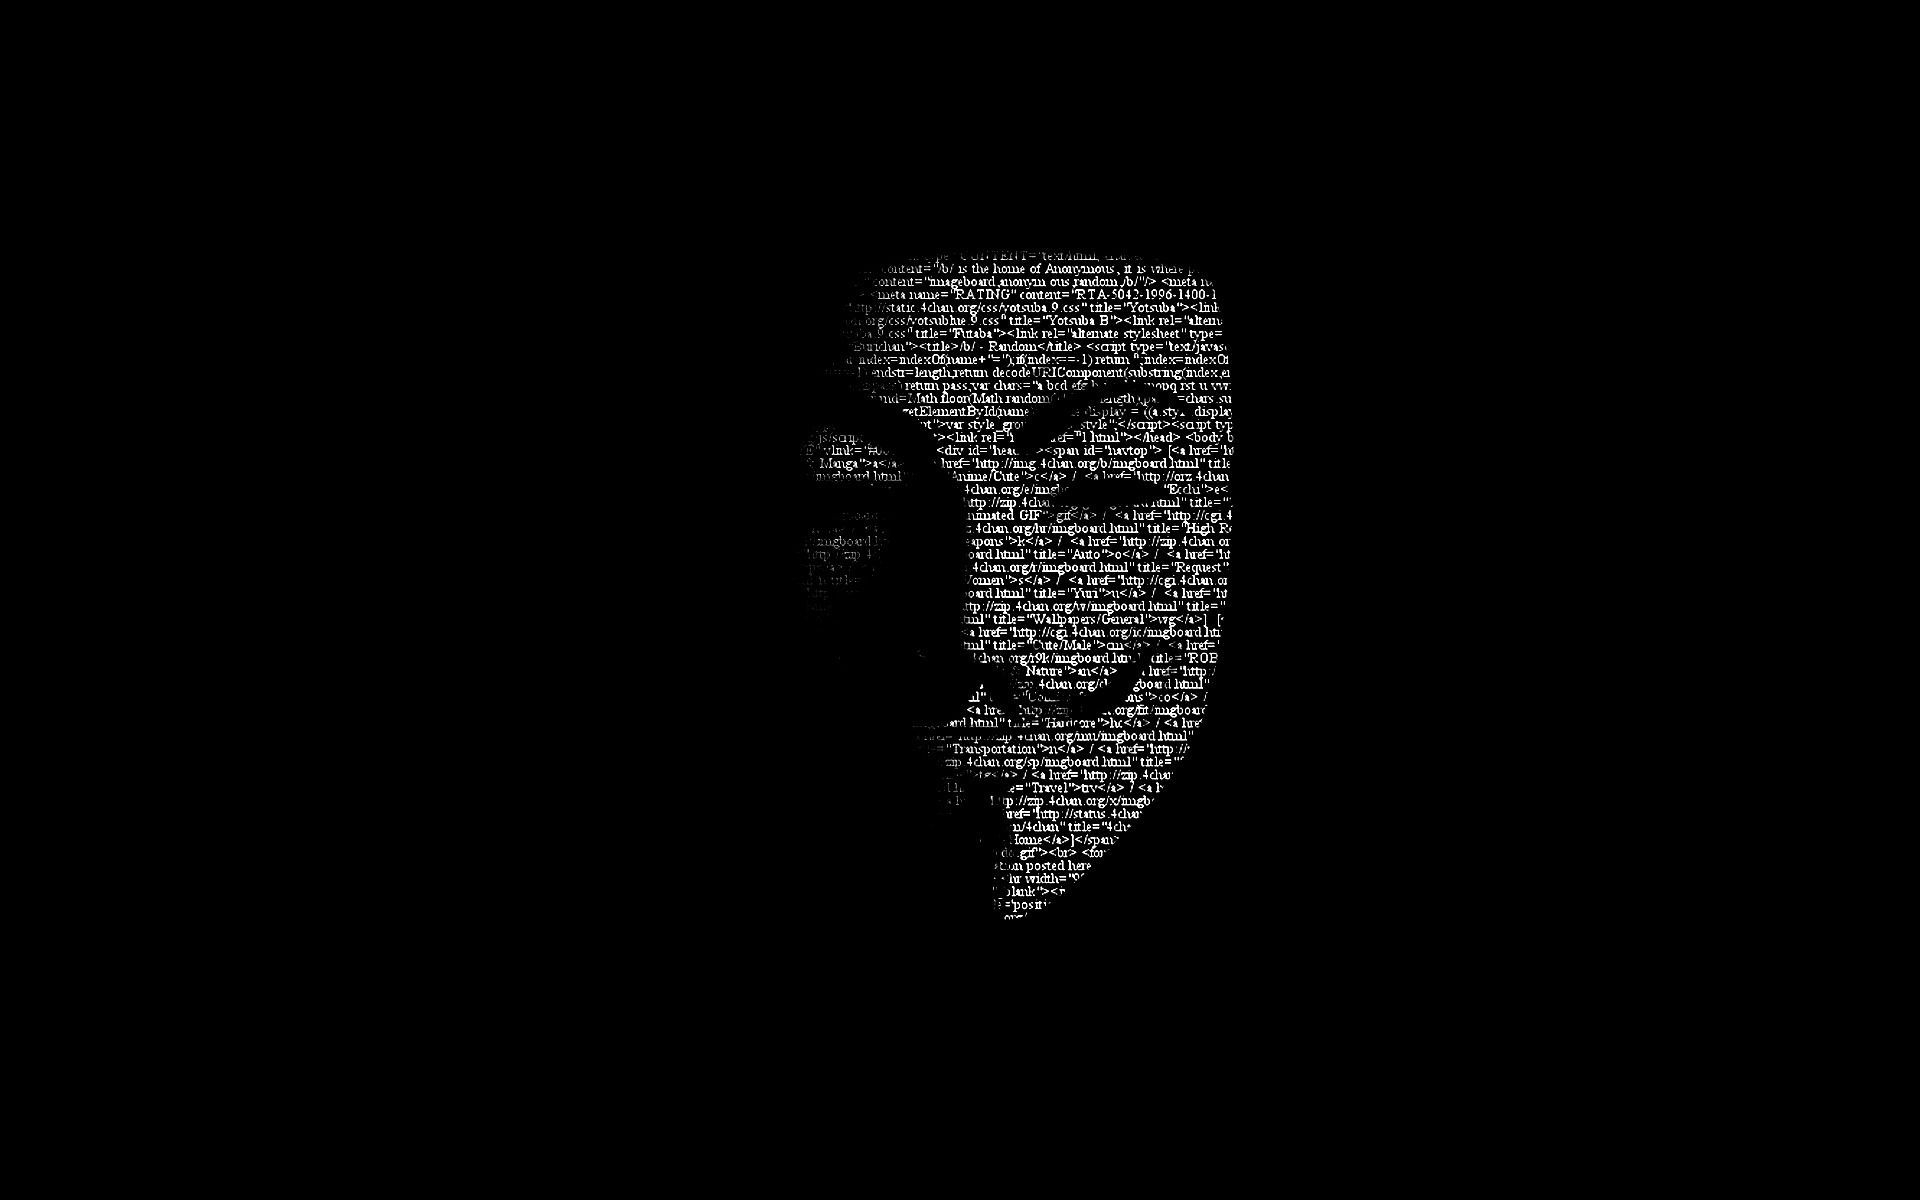 v for vendetta wallpapers hd - wallpaper cave | all wallpapers